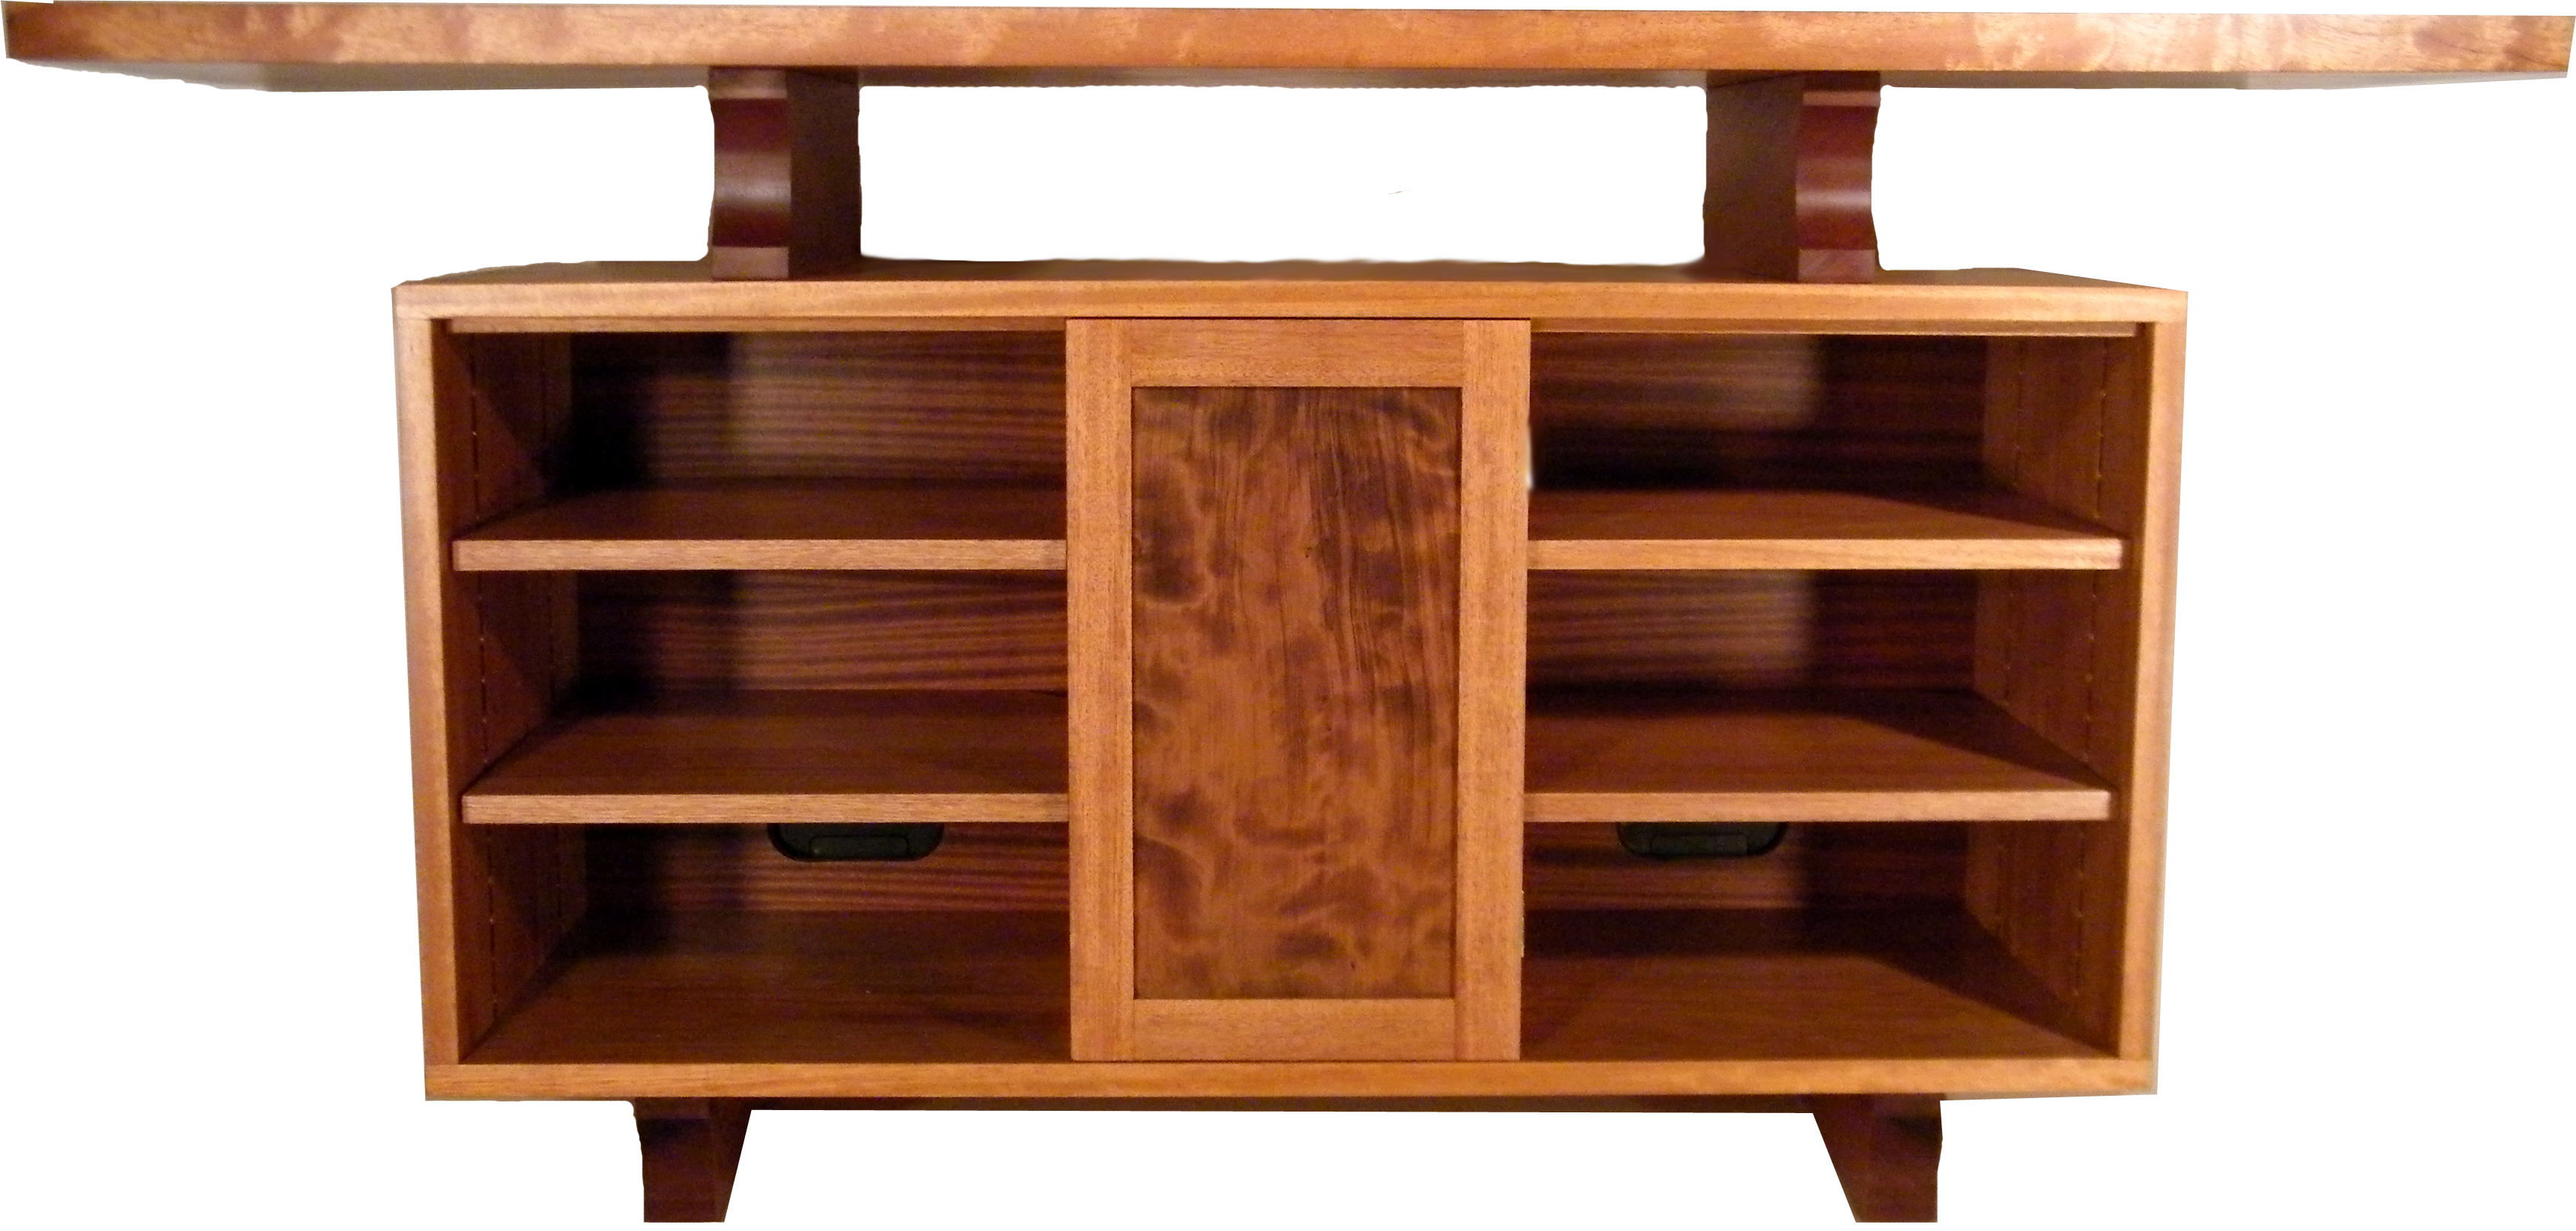 Custom wood furniture at the galleria for Wooden furniture design